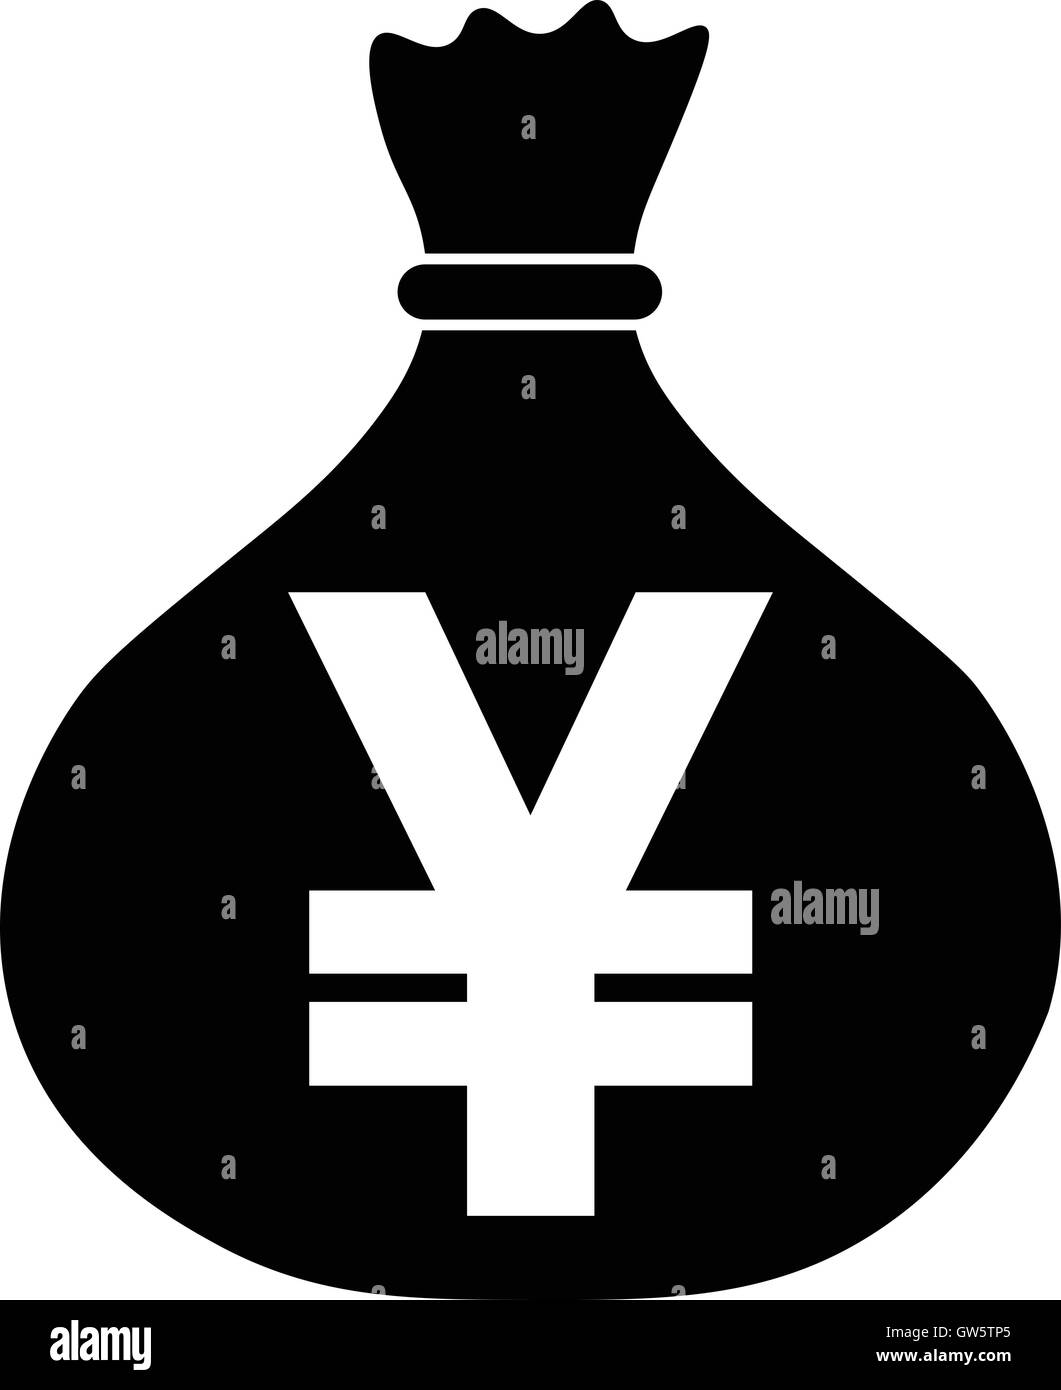 Yuan china money black and white stock photos images alamy money bag icon with japan yen chinese yuan symbol jpy cny currency symbol biocorpaavc Choice Image